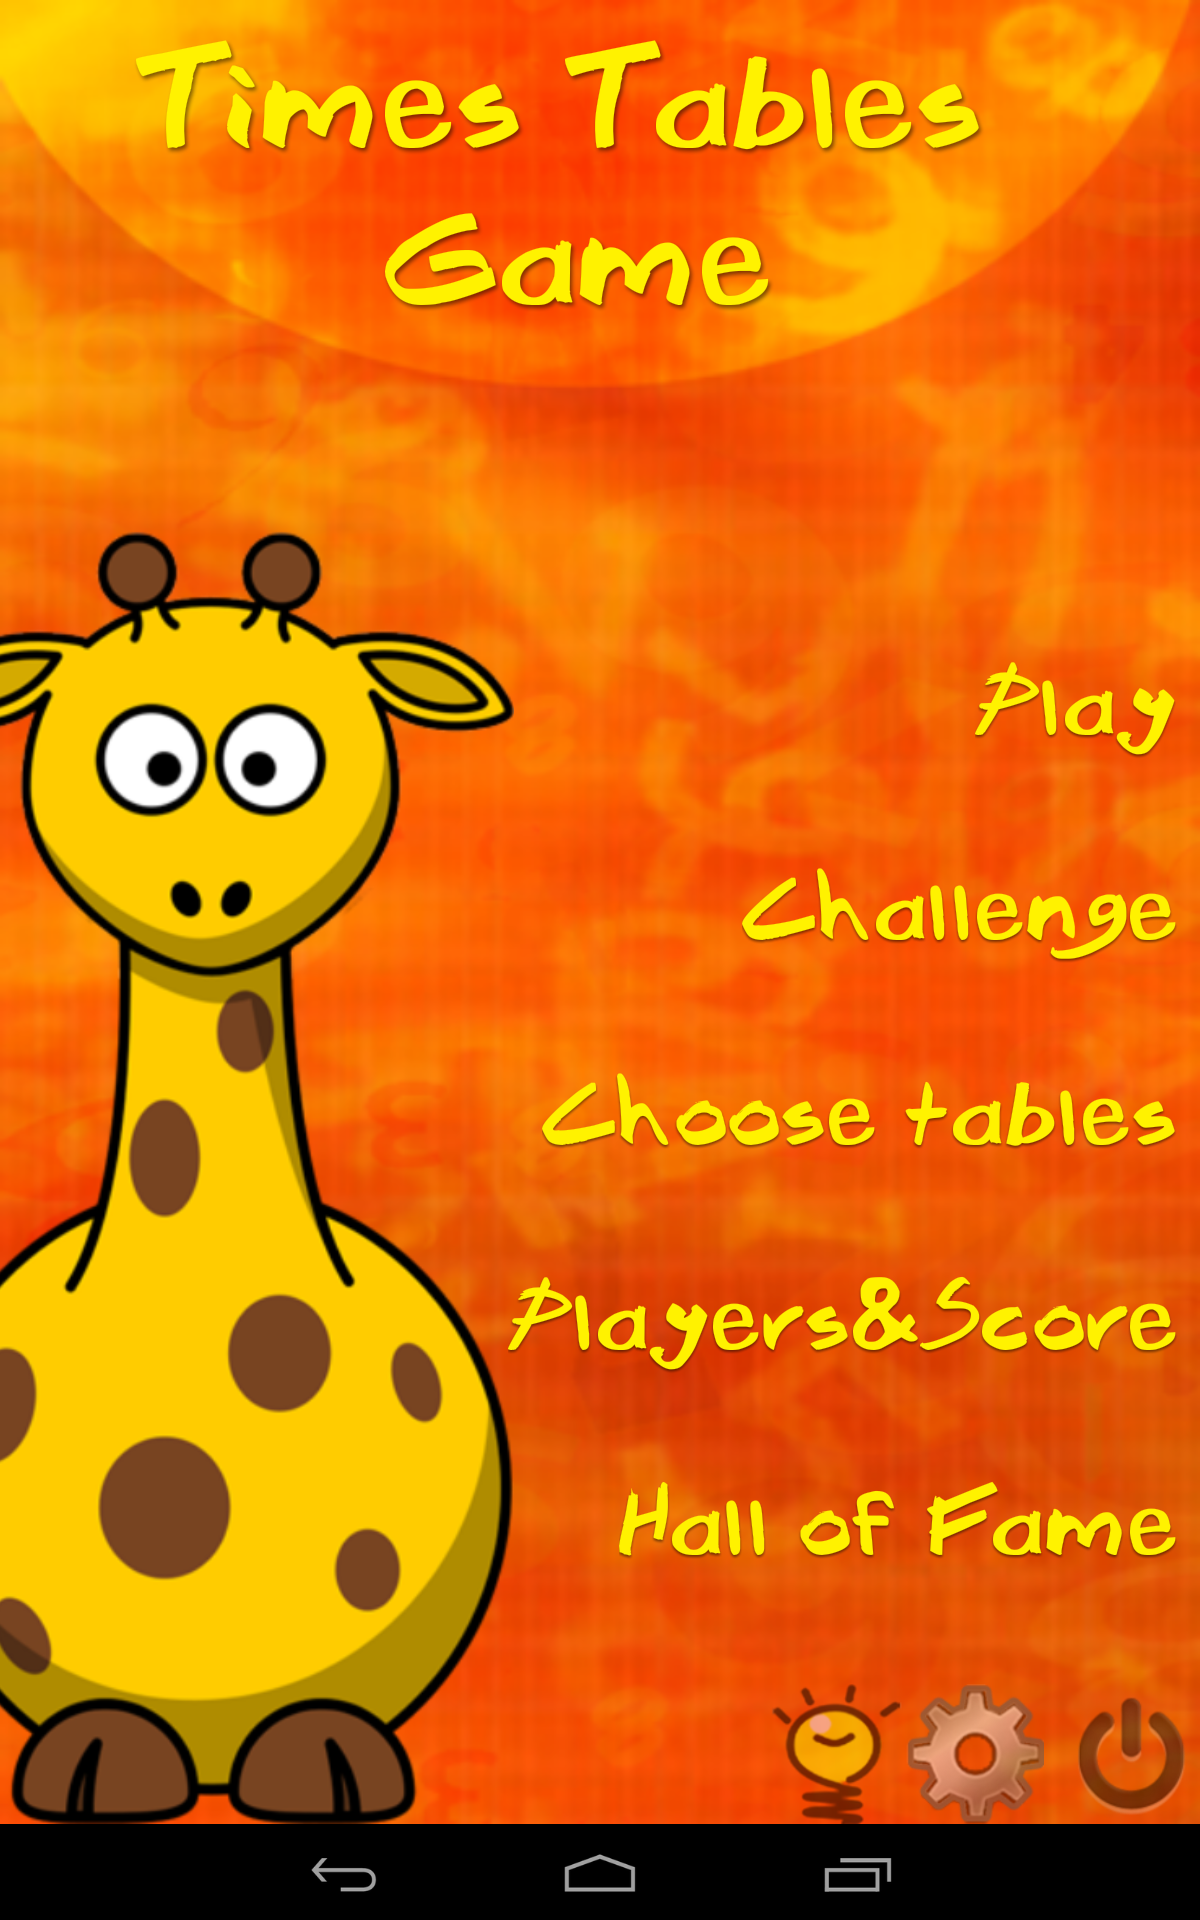 Times Tables Game screenshot #7